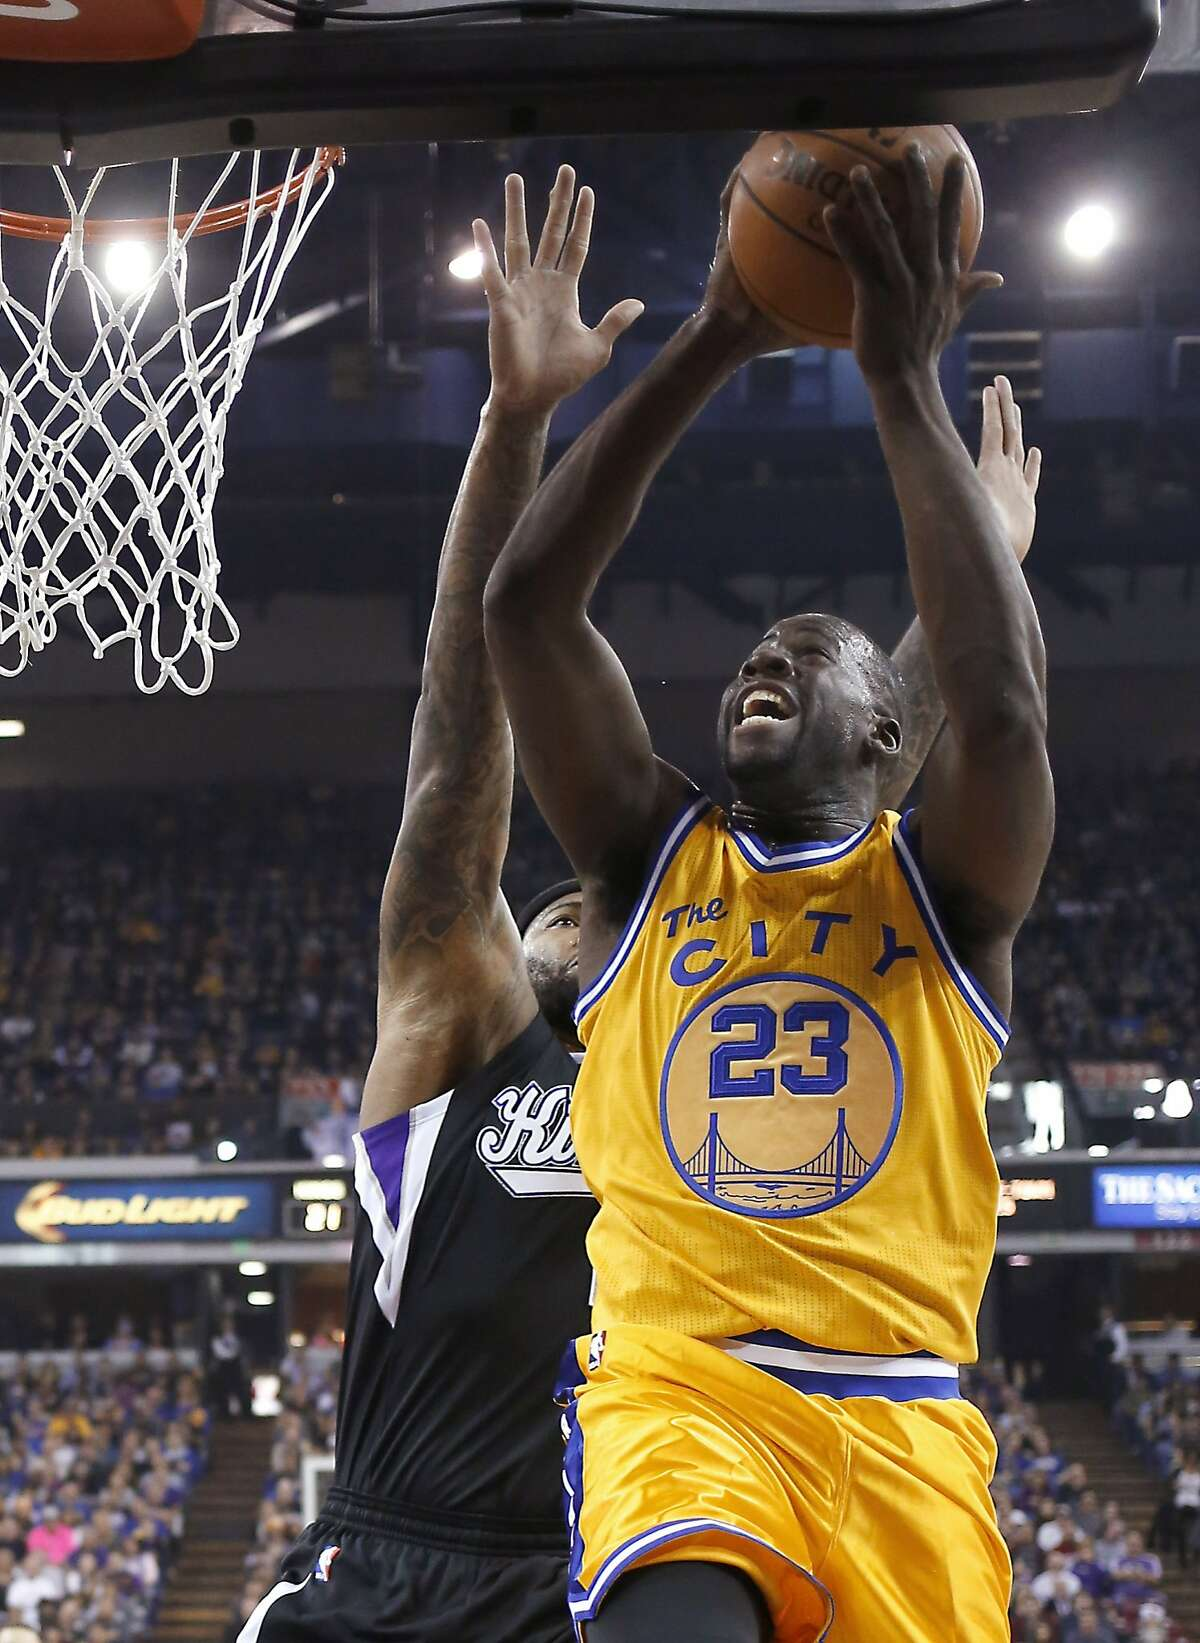 Golden State Warriors forward Draymond Green, right, goes to the basket against Sacramento Kings forward DeMarcus Cousins during the first quarter of an NBA basketball game Saturday, Jan. 9, 2016, in Sacramento, Calif. (AP Photo/Rich Pedroncelli)